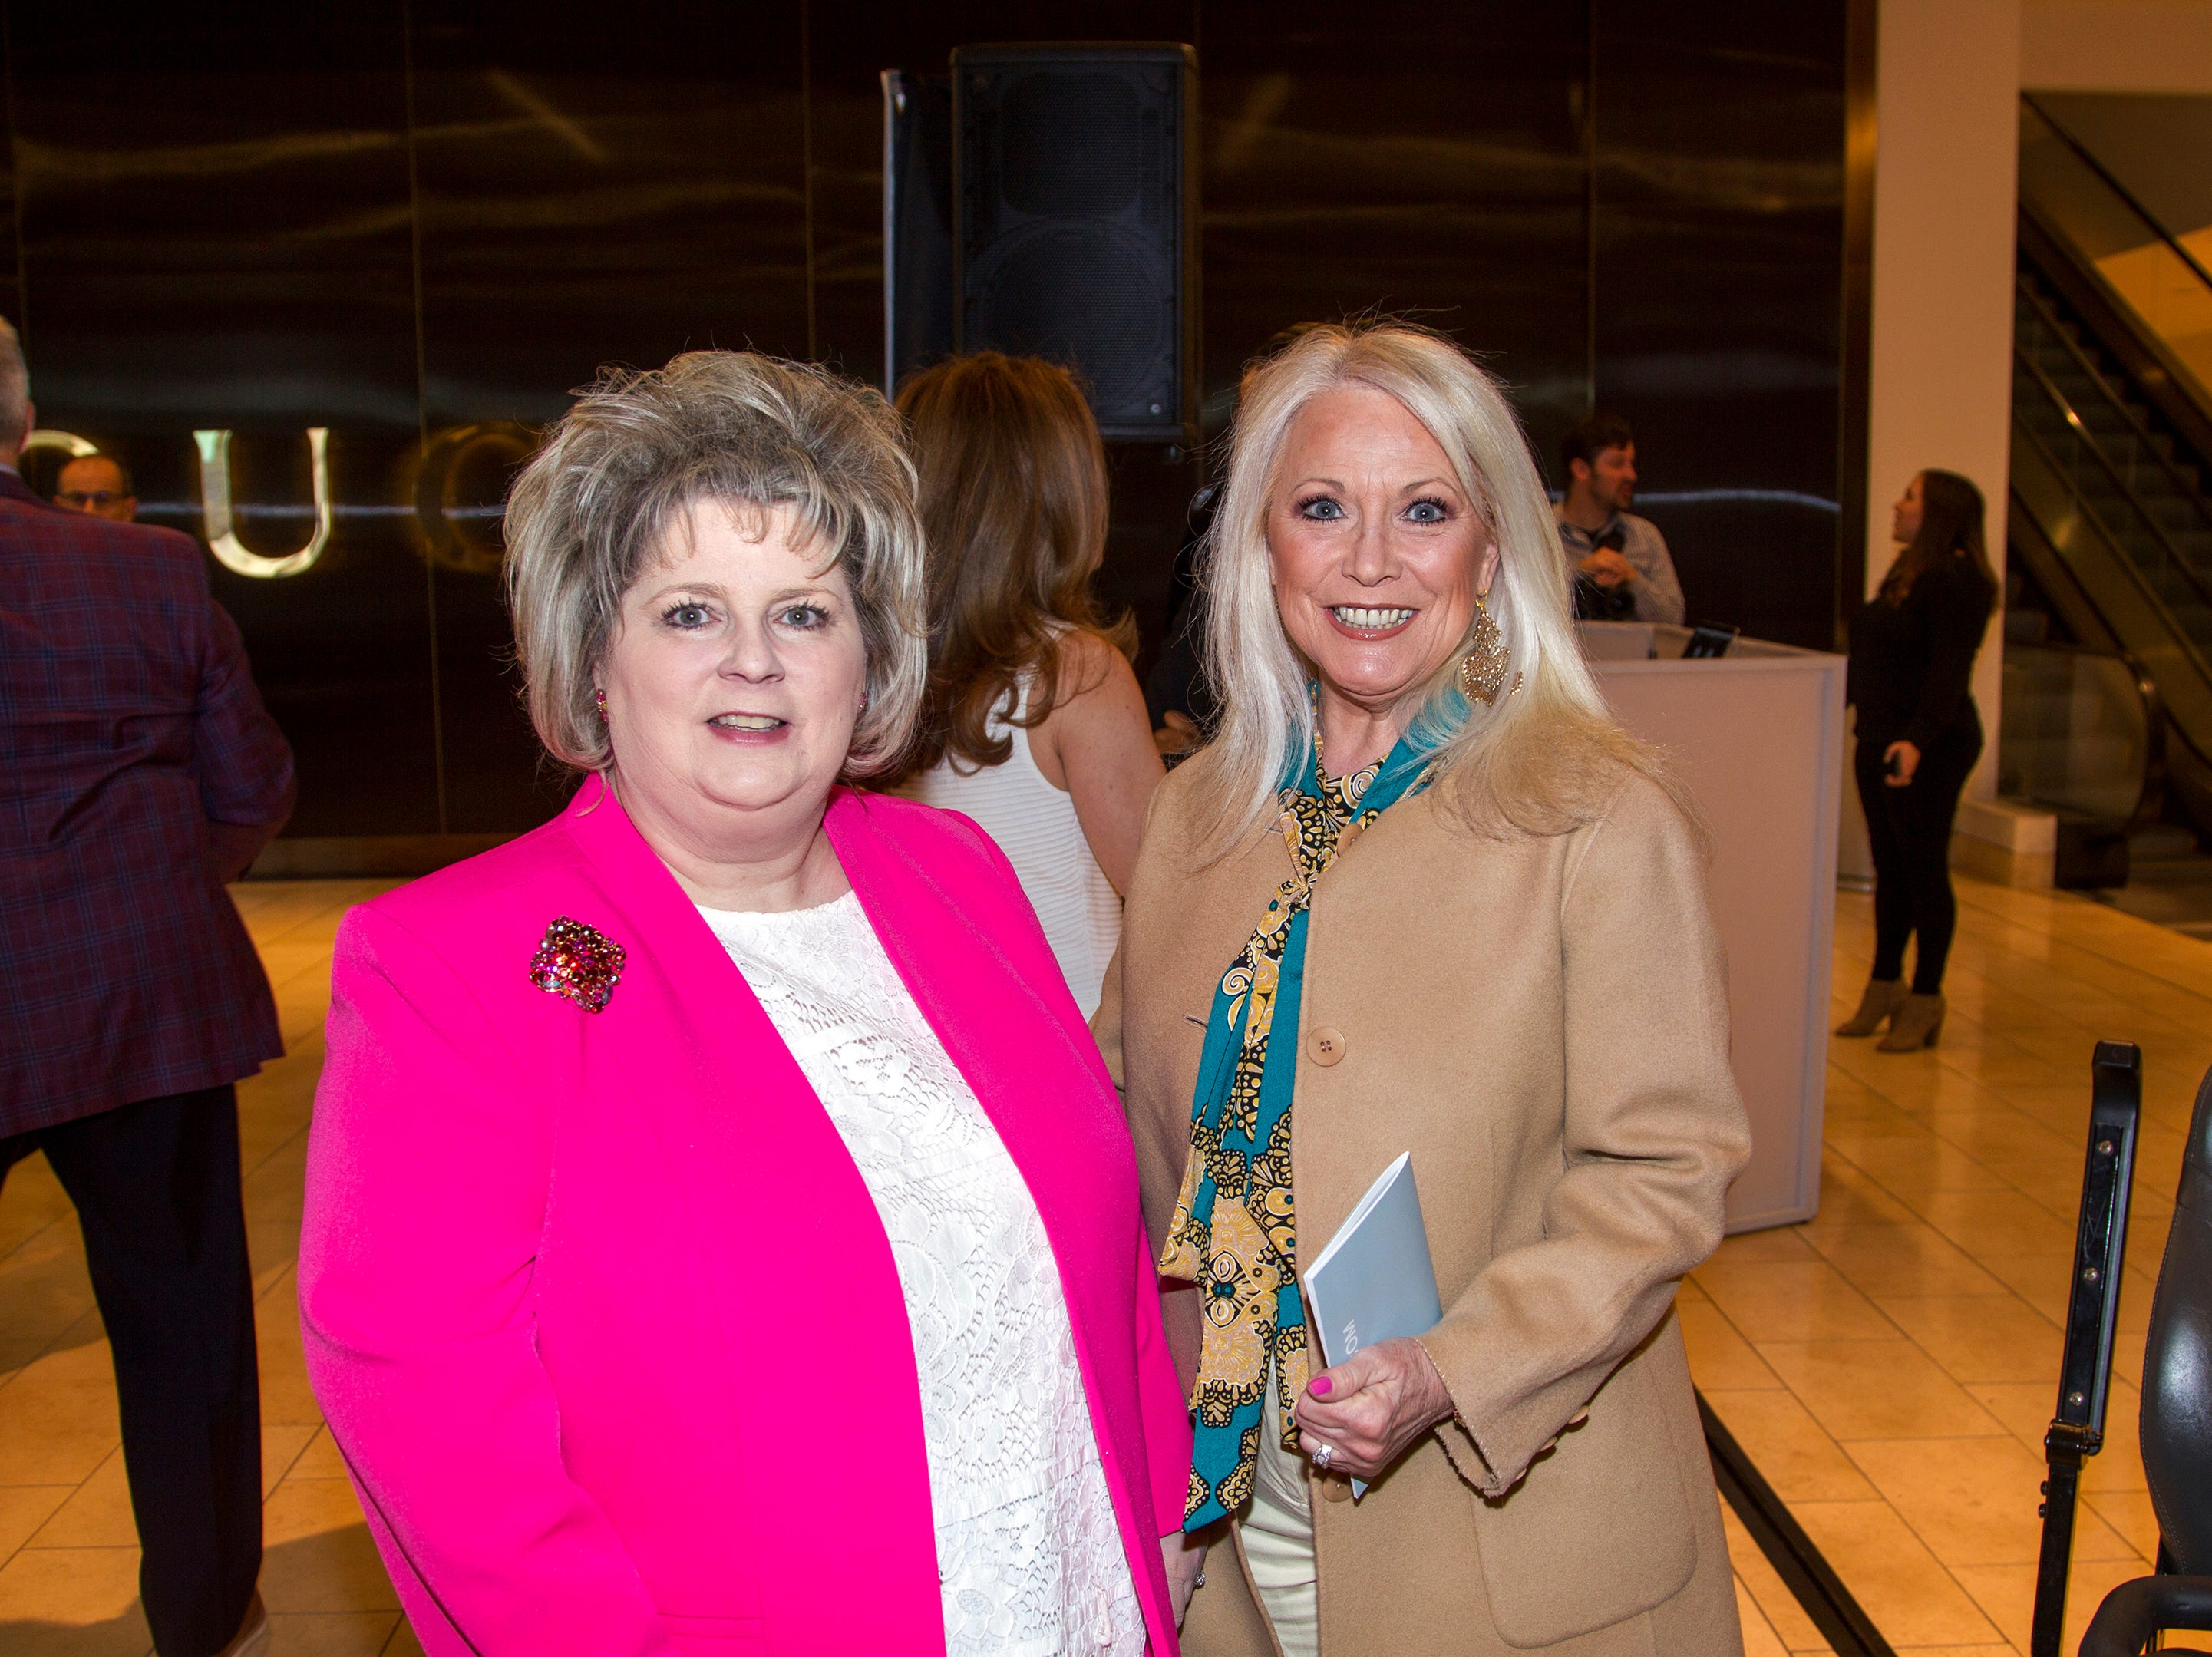 Linda Webster Cennerazzo, Cathy tatel. Westfield Garden State Plaza held its Meet the Artist & Trend Show benefitting The Valley Hospital Auxillary Saddle River Branch. 04/03/2019